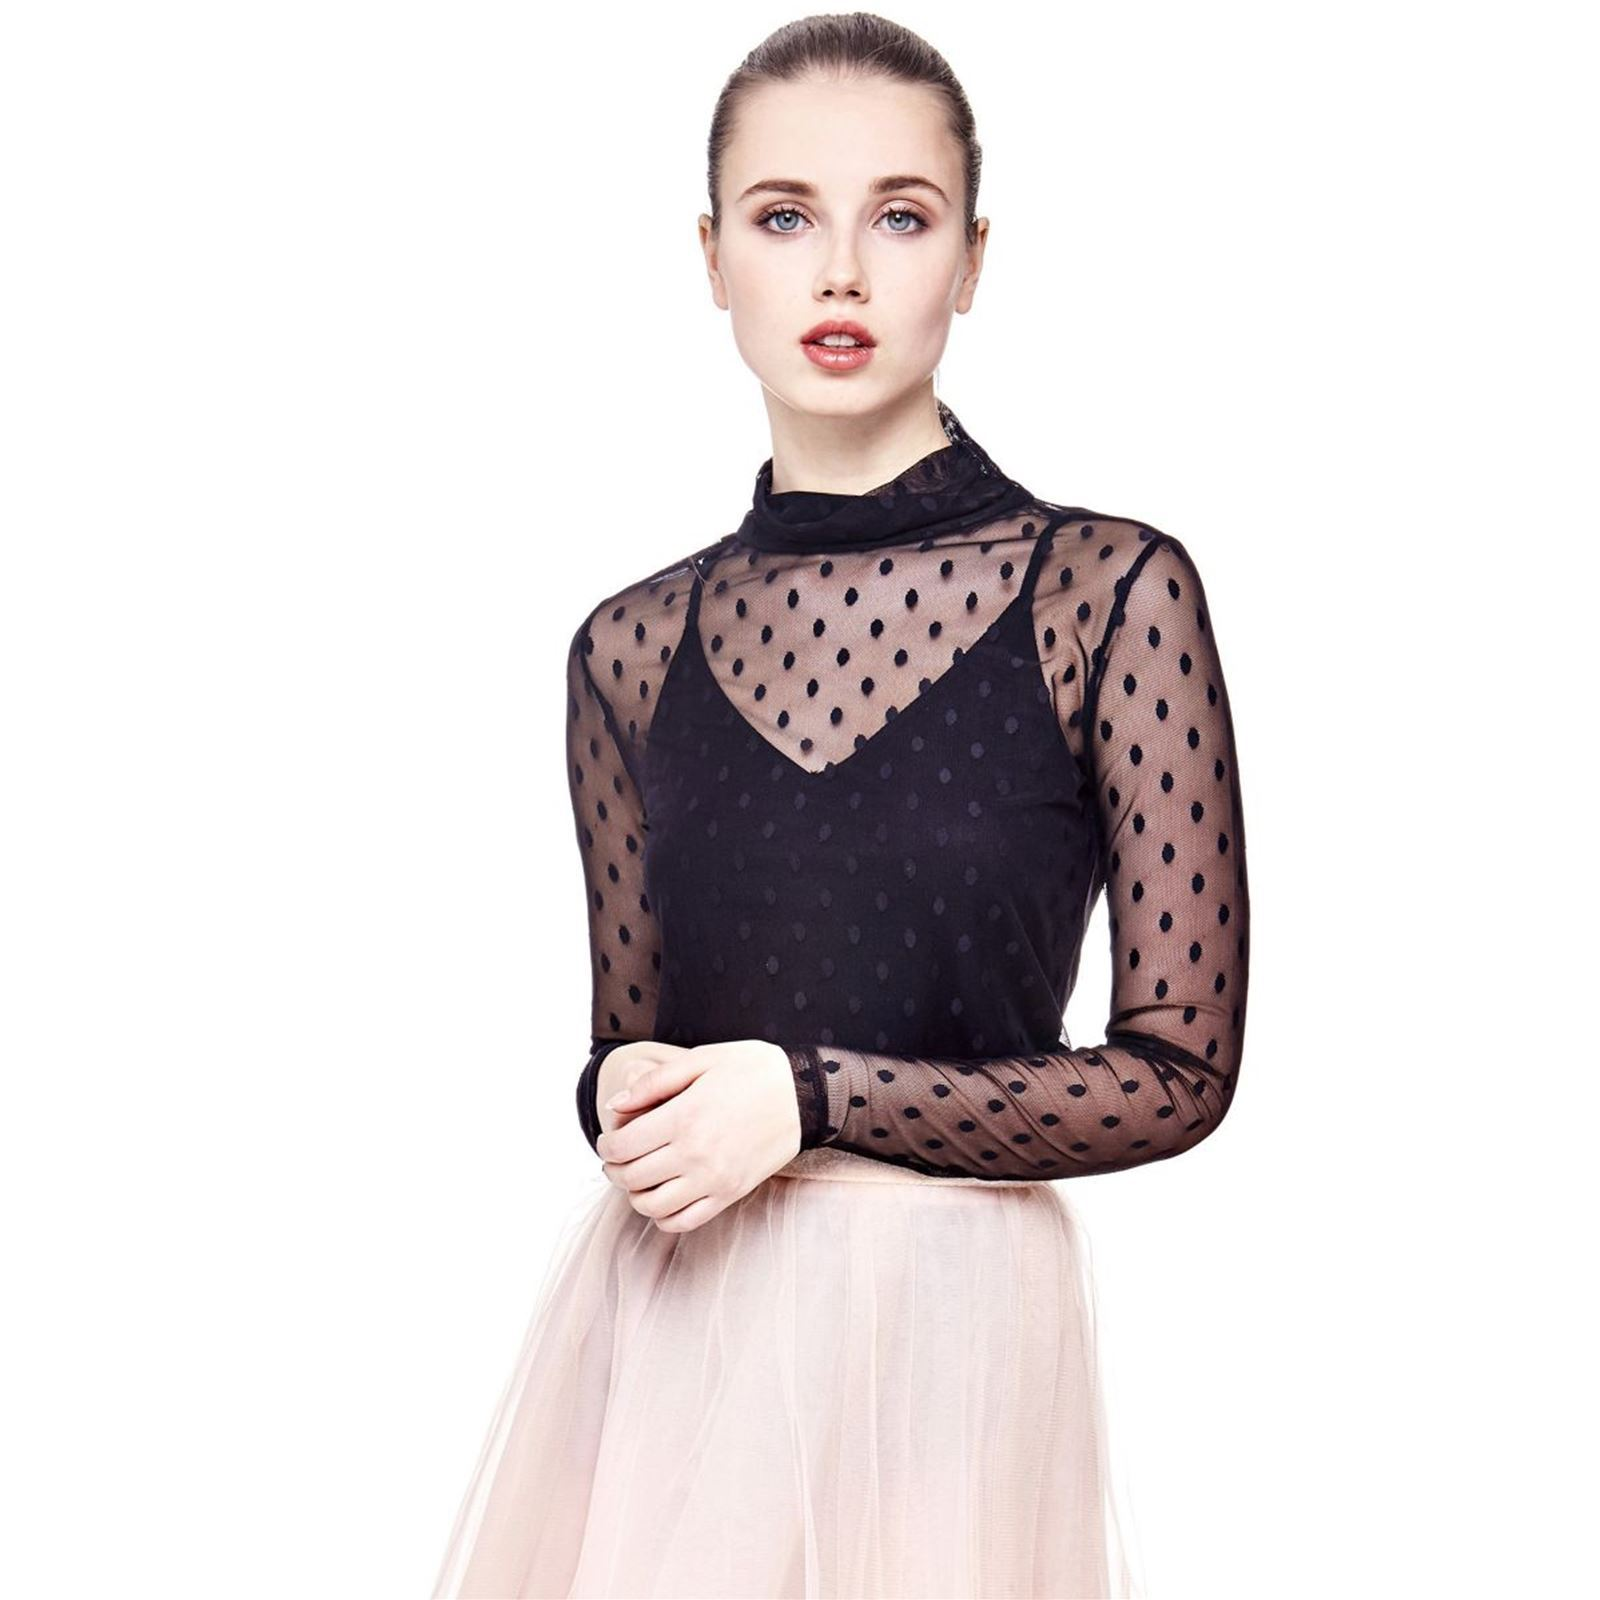 Guess Top à pois en tissu transparent - noir